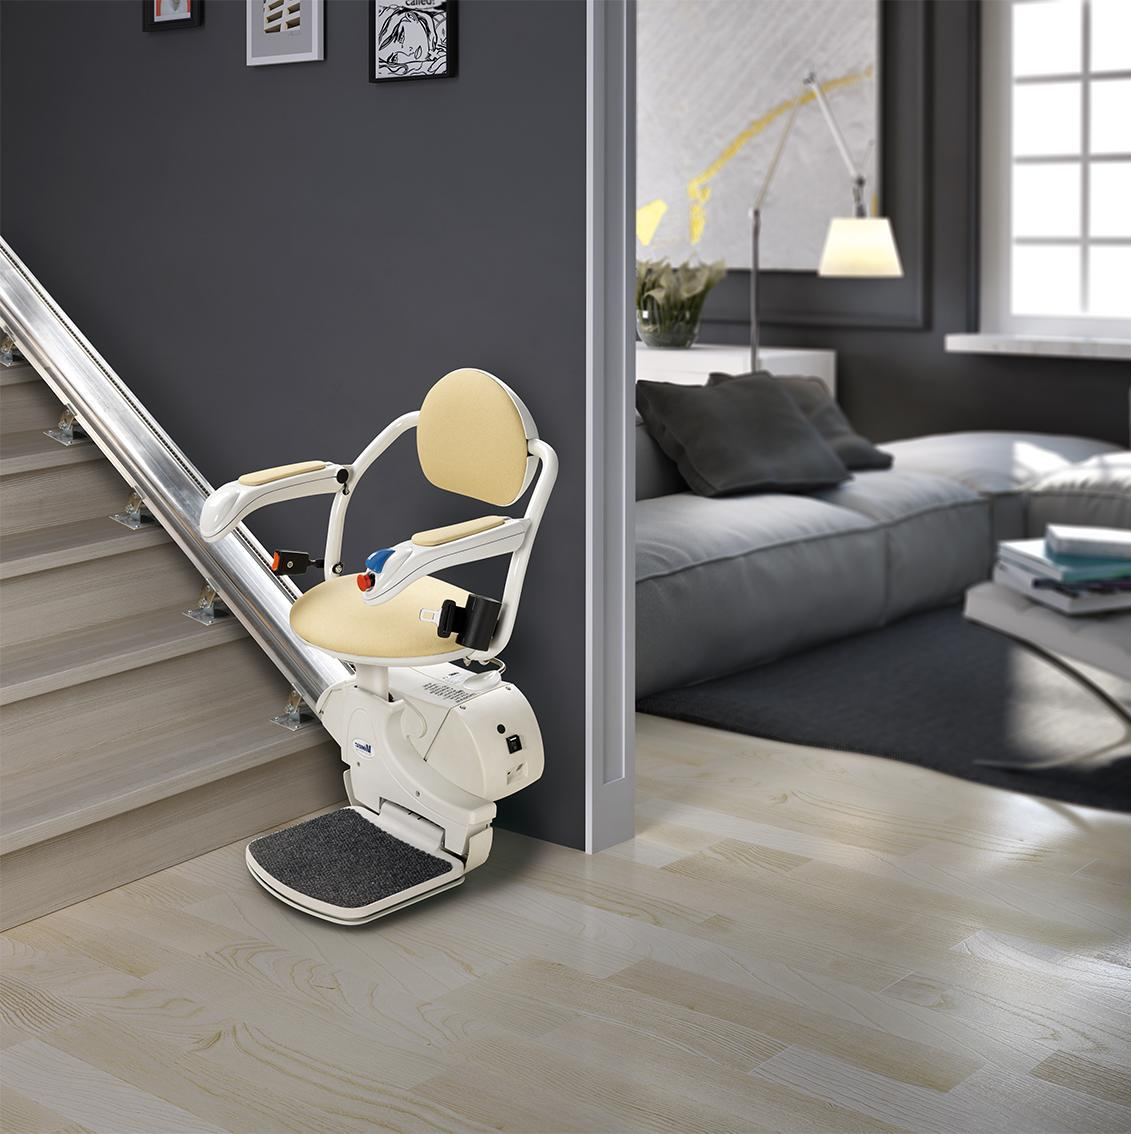 stair-lift-page-3